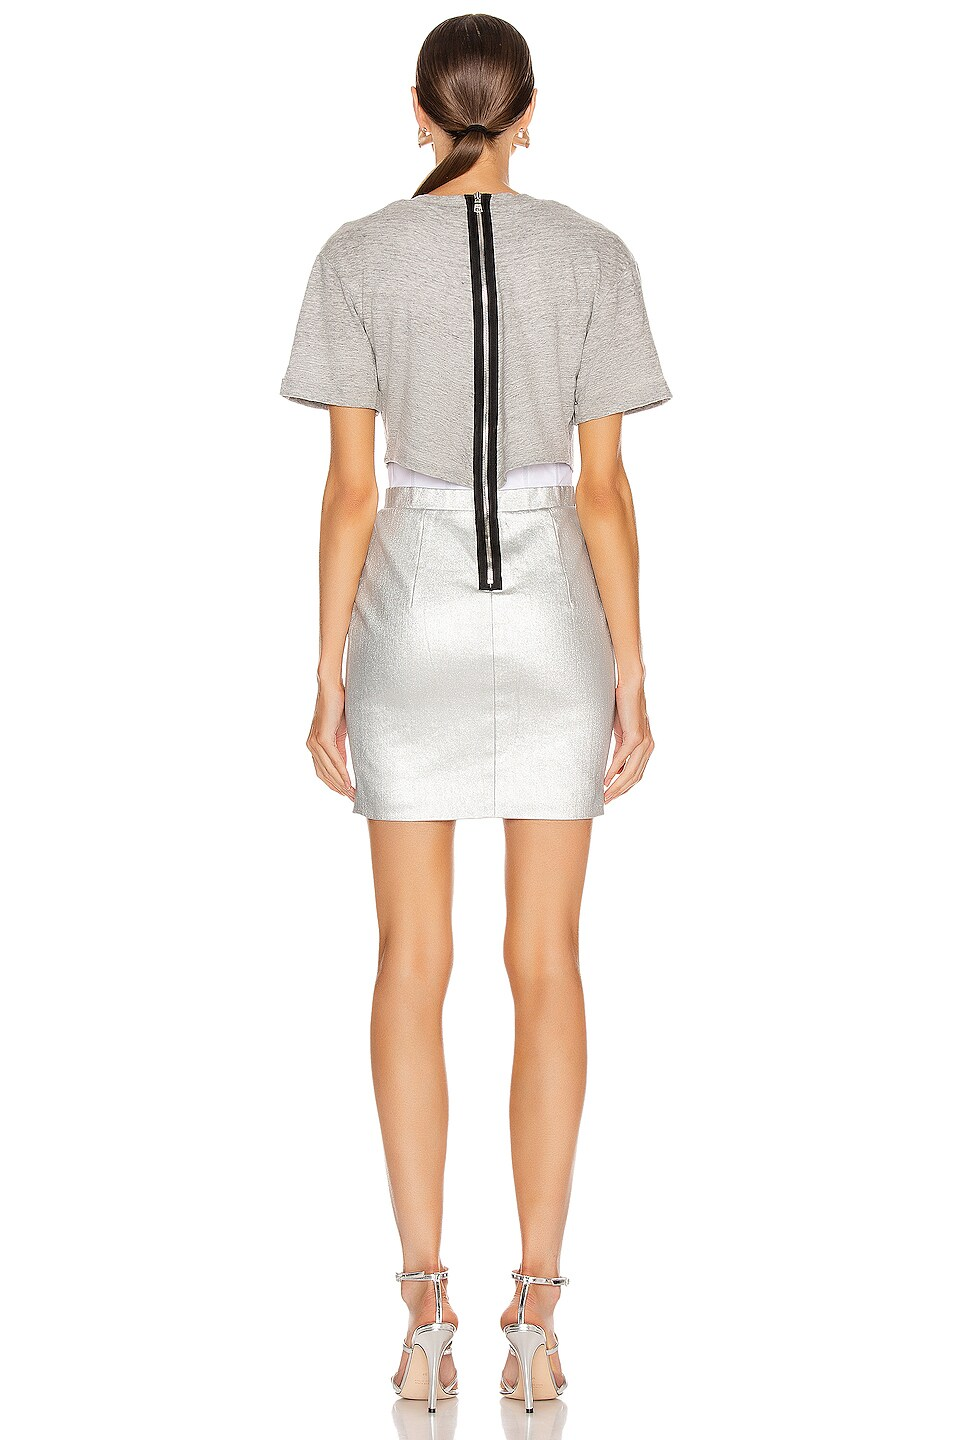 Image 3 of RtA Naomi Dress in Sound Silver